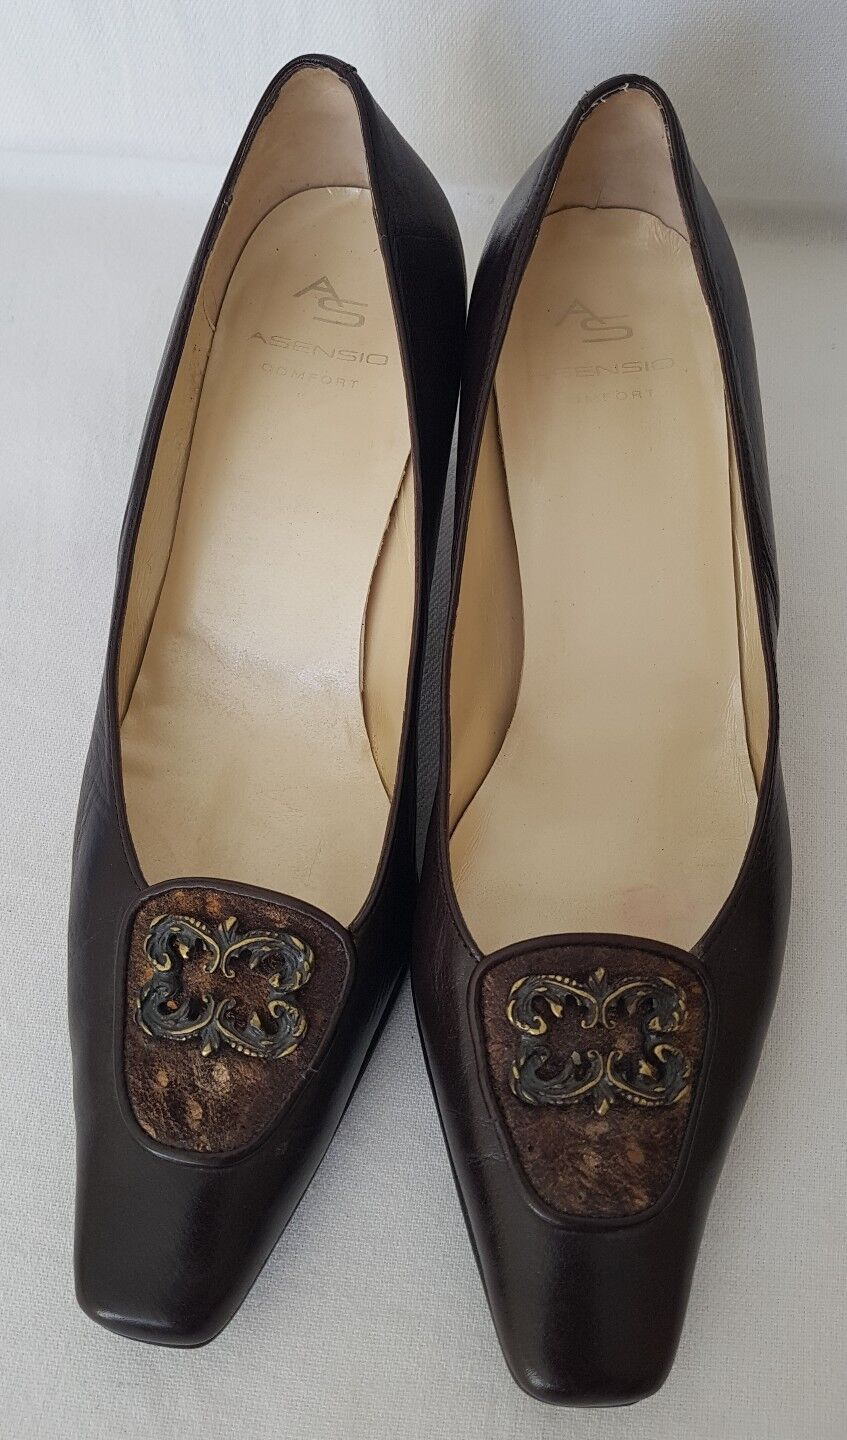 ASENSIO Comfort Dark Brown Leather Court Work Occasion shoes EU 38 UK 5